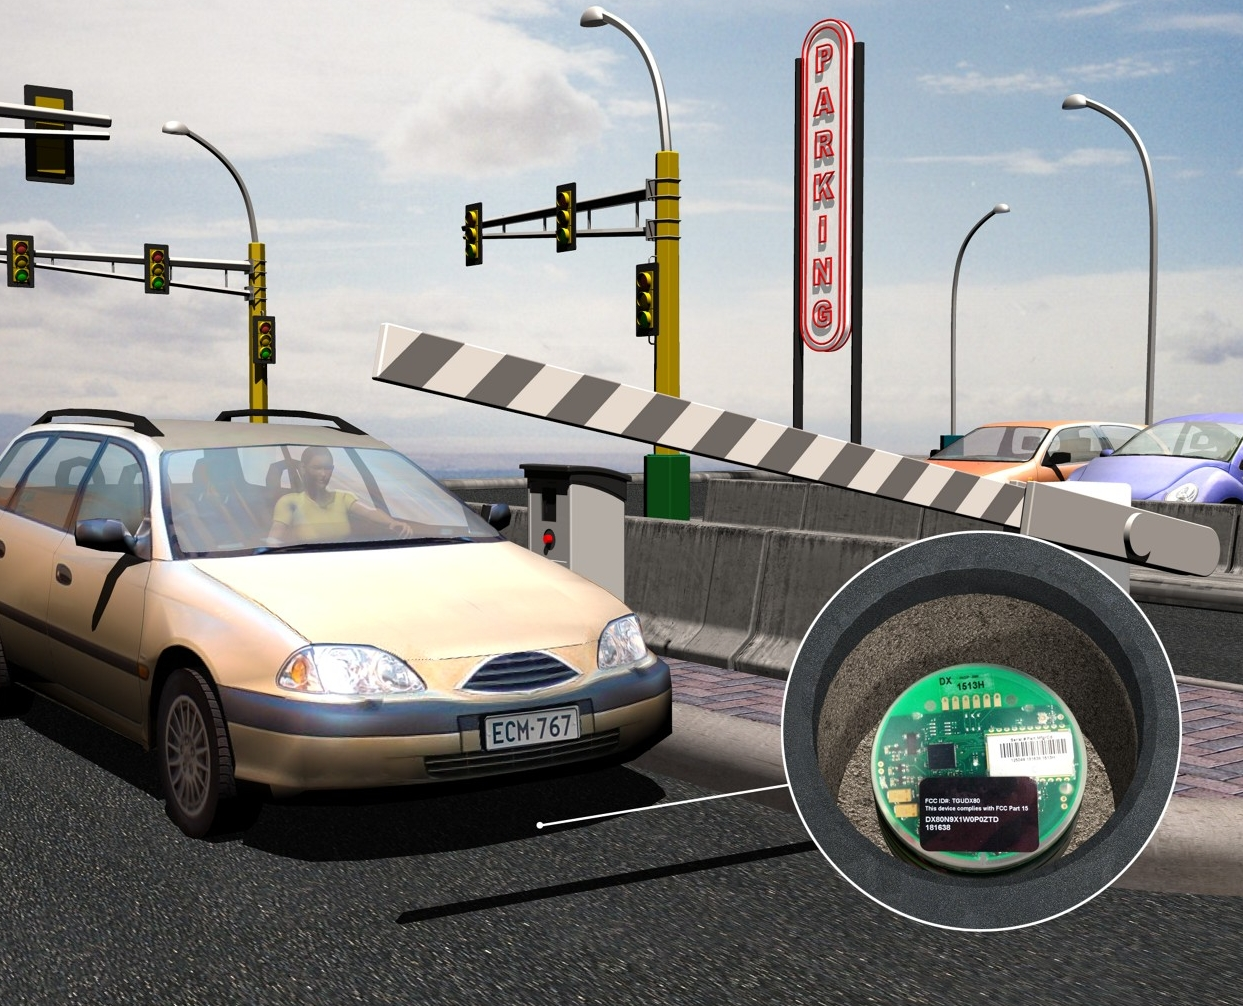 wireless magnetometer for vehicle detection in parking applications